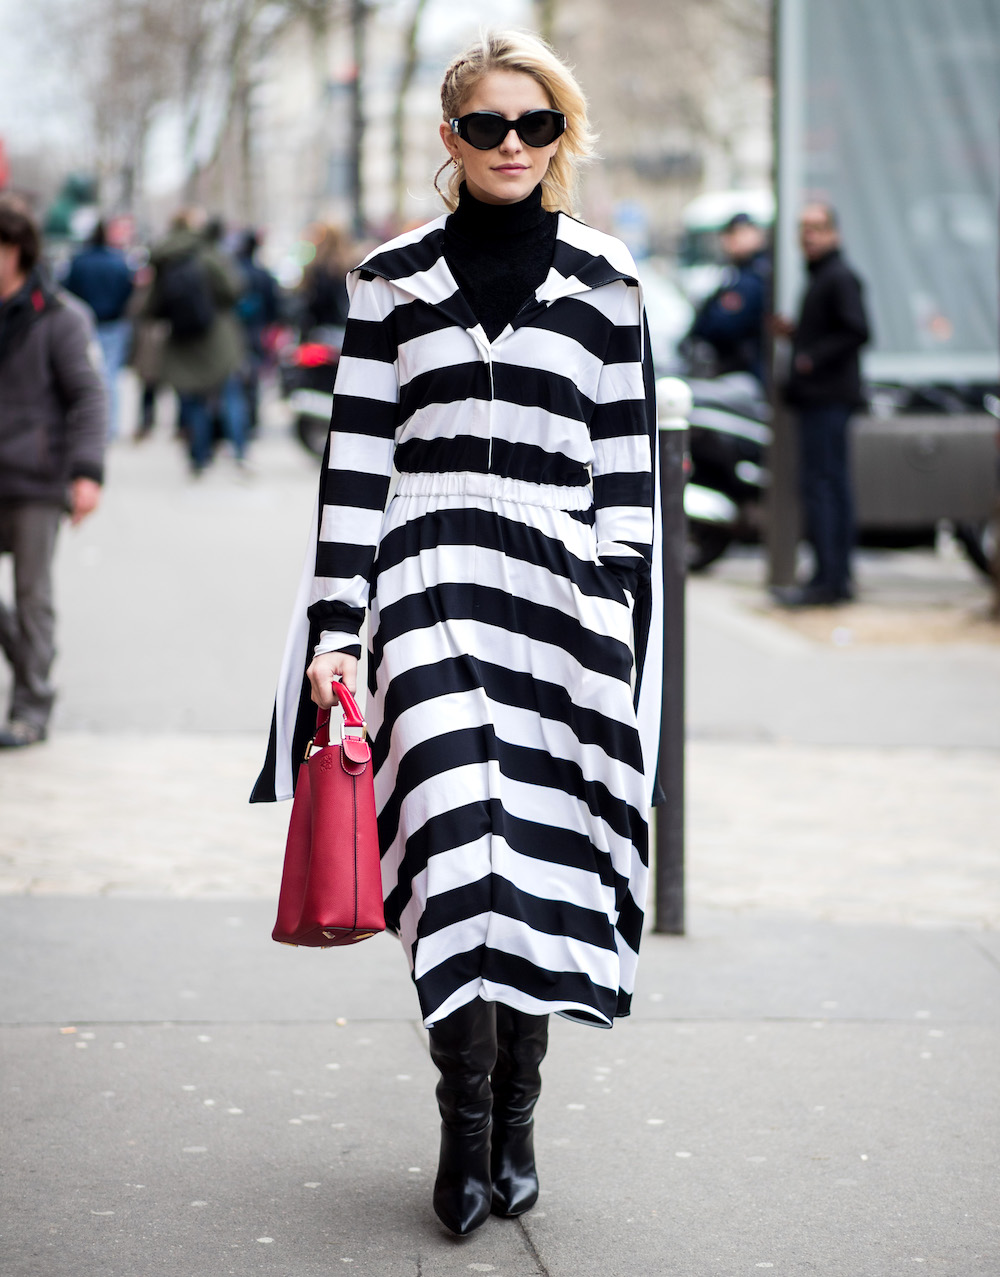 Caro Daur wearing striped coat